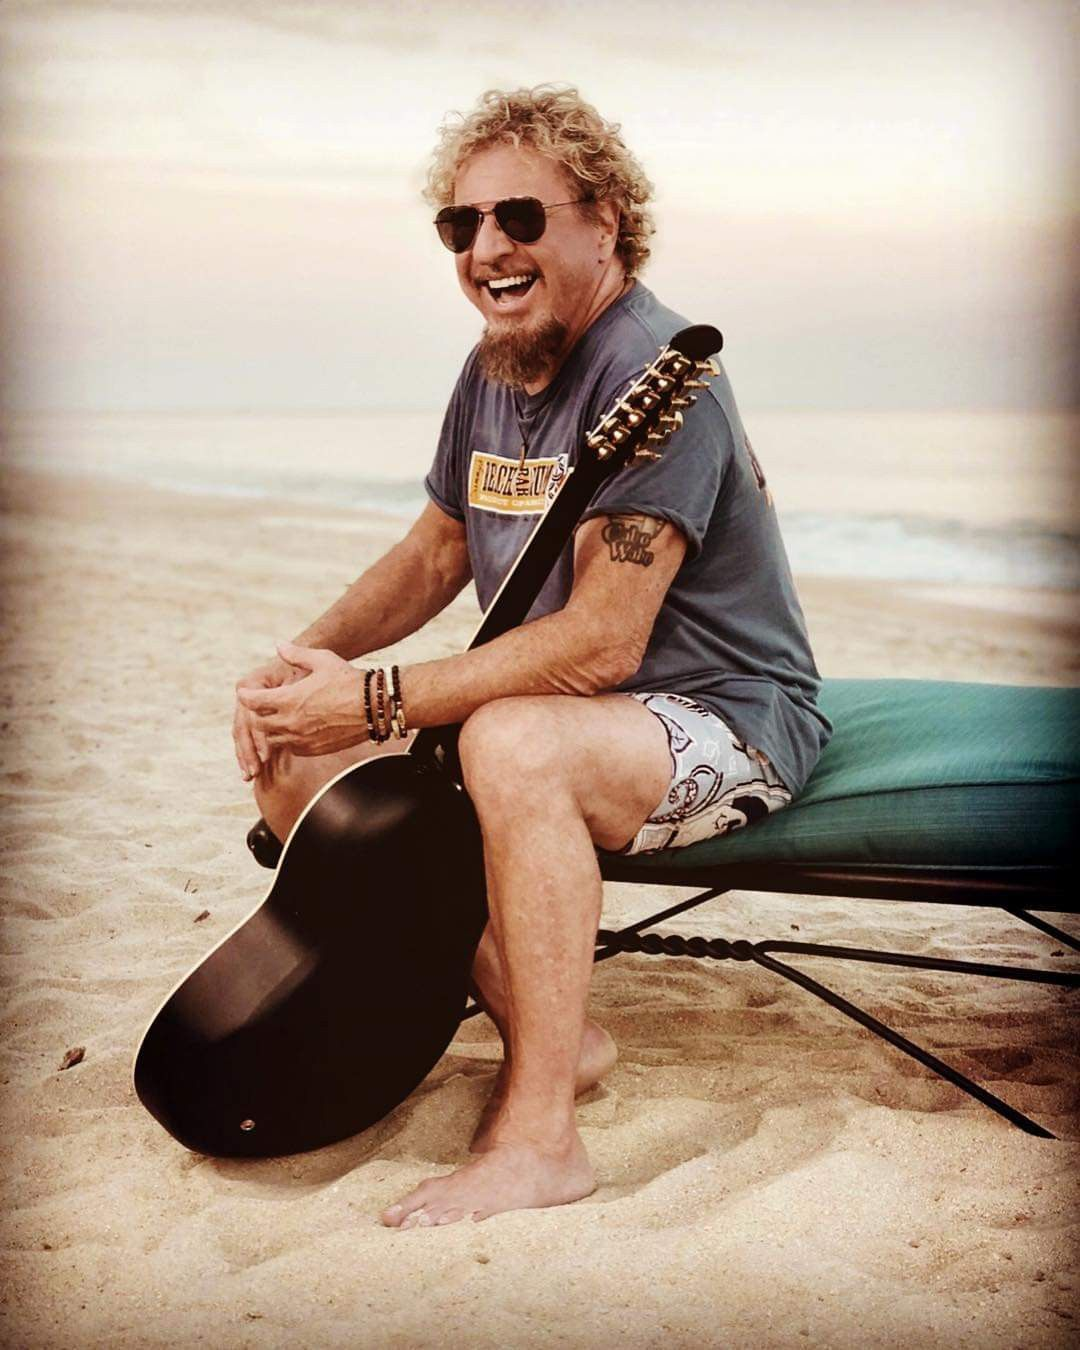 Pin By Sherry Burke On Sammy Hagar The Red Rocker Sammy Hagar Red Rocker Van Halen